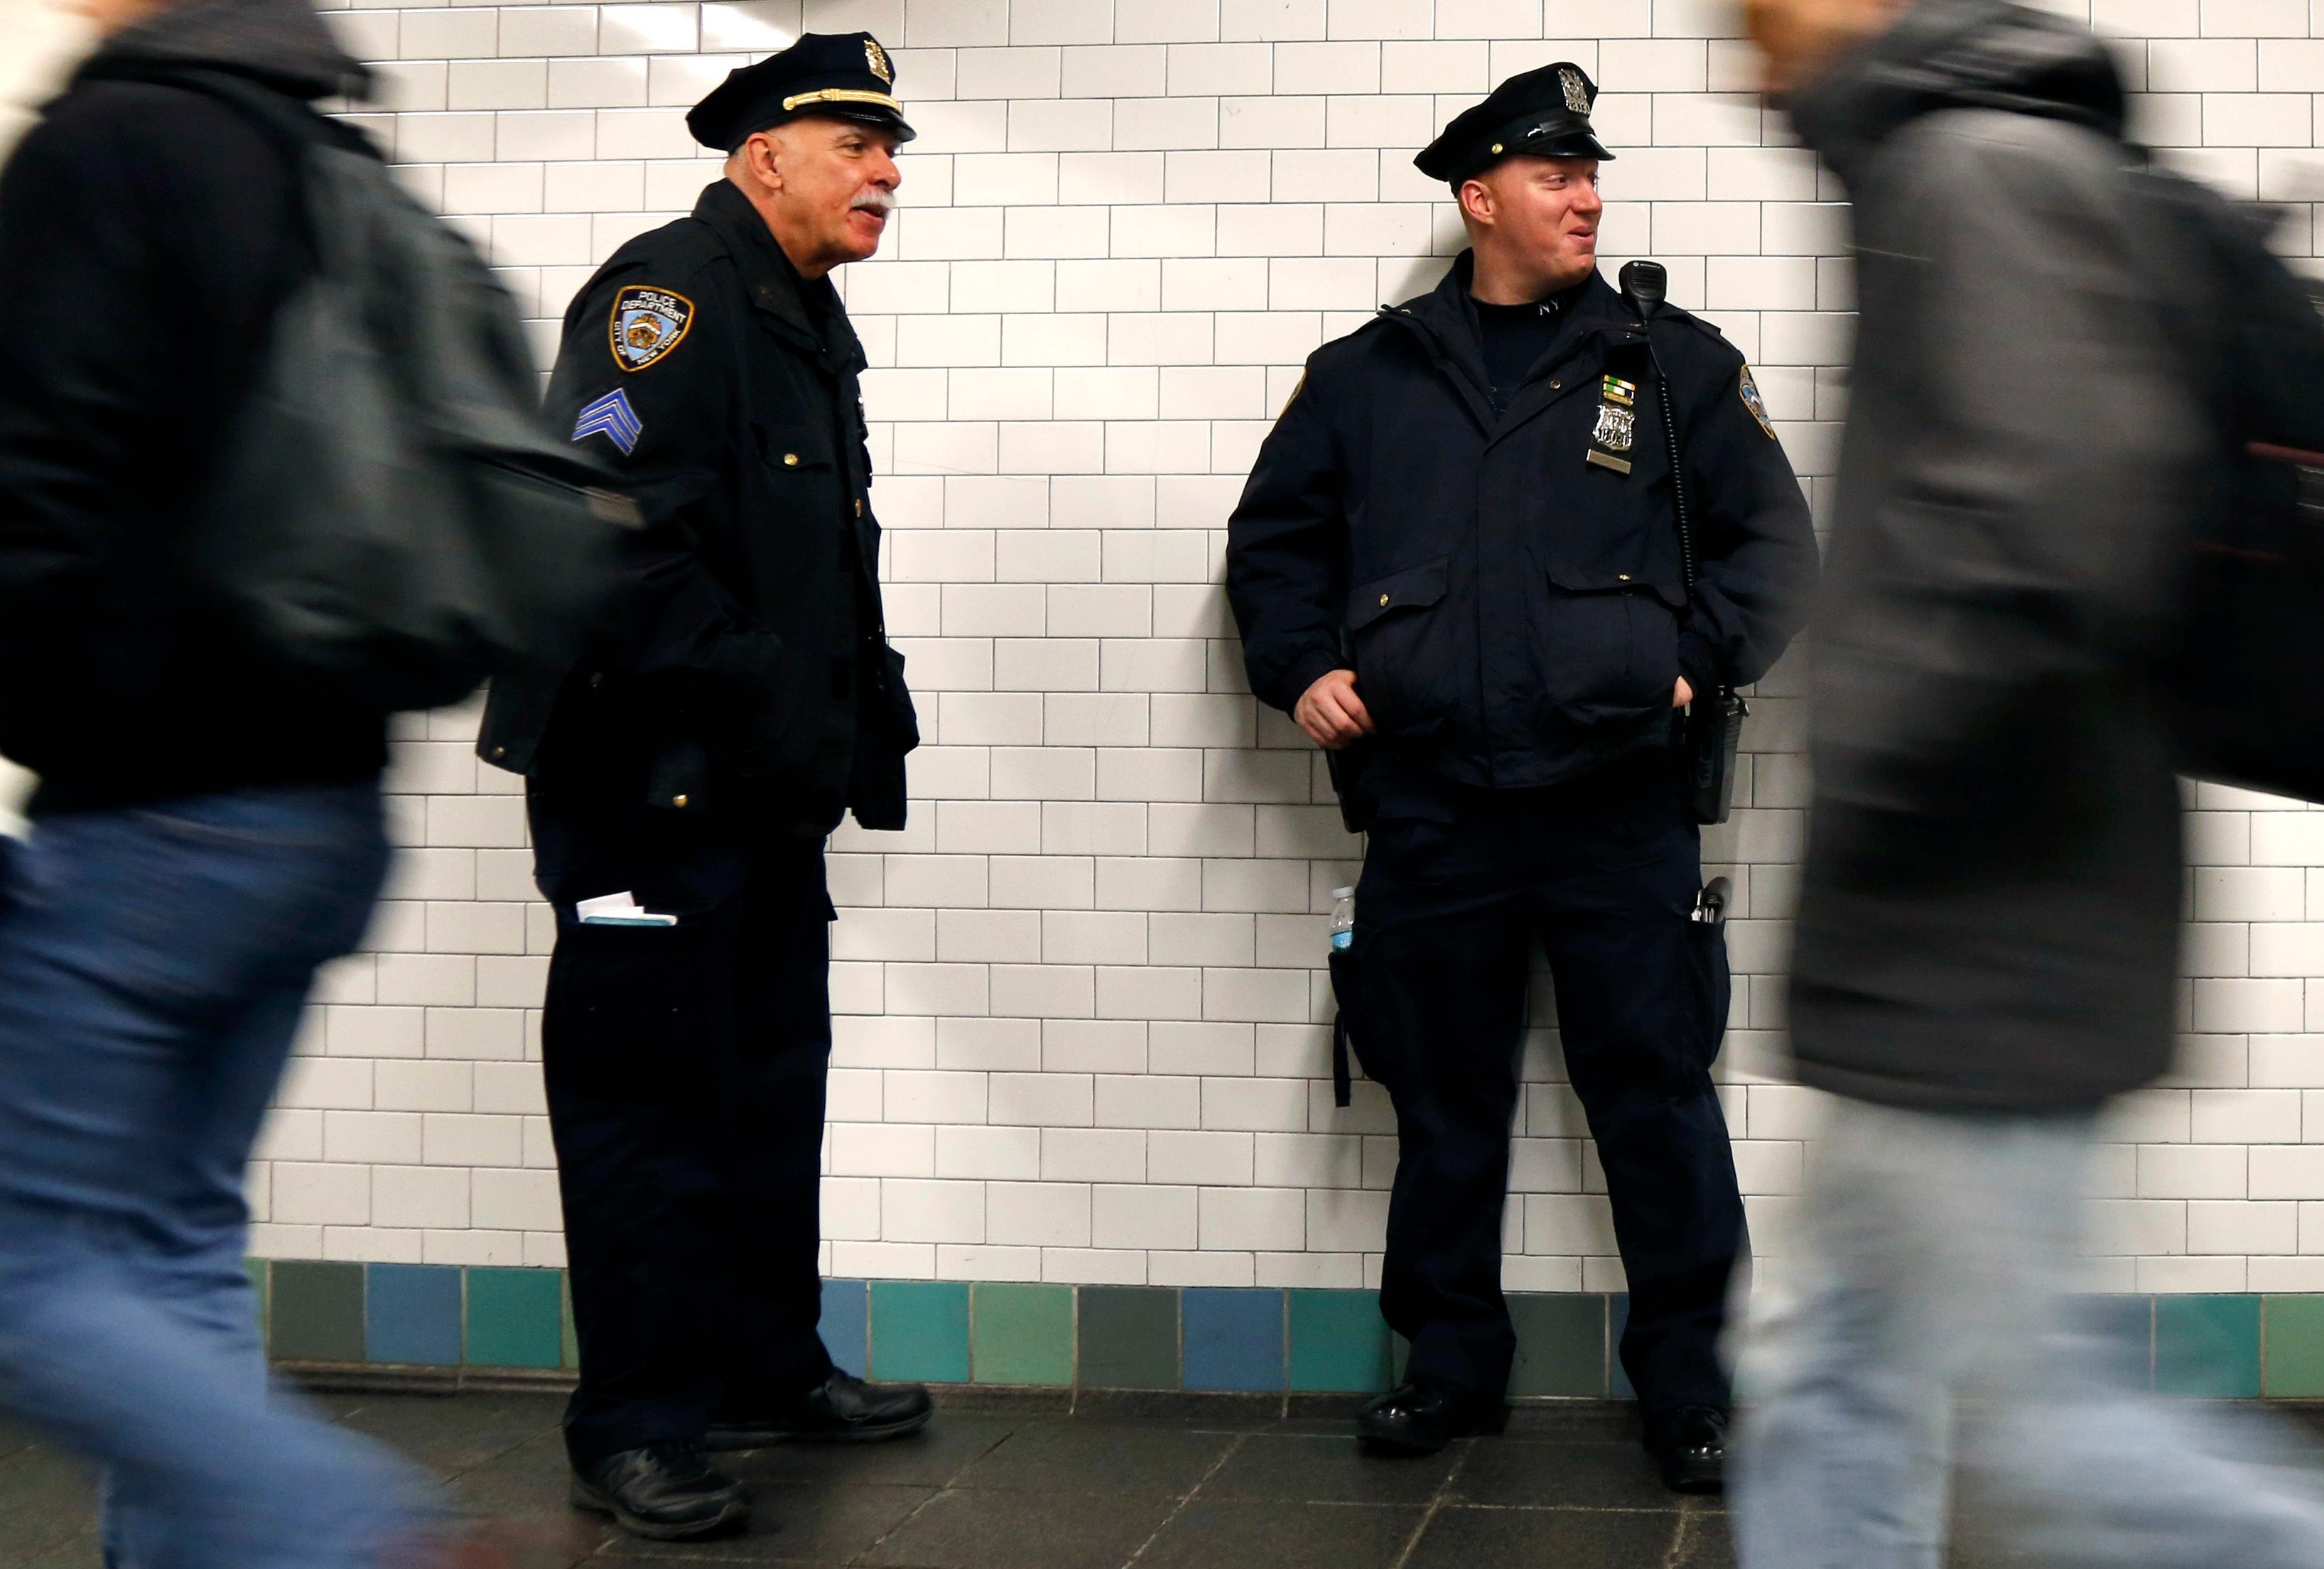 Police officers patrol in the passageway connecting New York City's Port Authority bus terminal and the Times Square subway station Tuesday, Dec. 12, 2017, near the site of Monday's explosion. Commuters returning to New York City's subway system on Tuesday were met with heightened security a day after a would-be suicide bomber's rush-hour blast failed to cause the bloodshed he intended. (AP Photo/Seth Wenig)